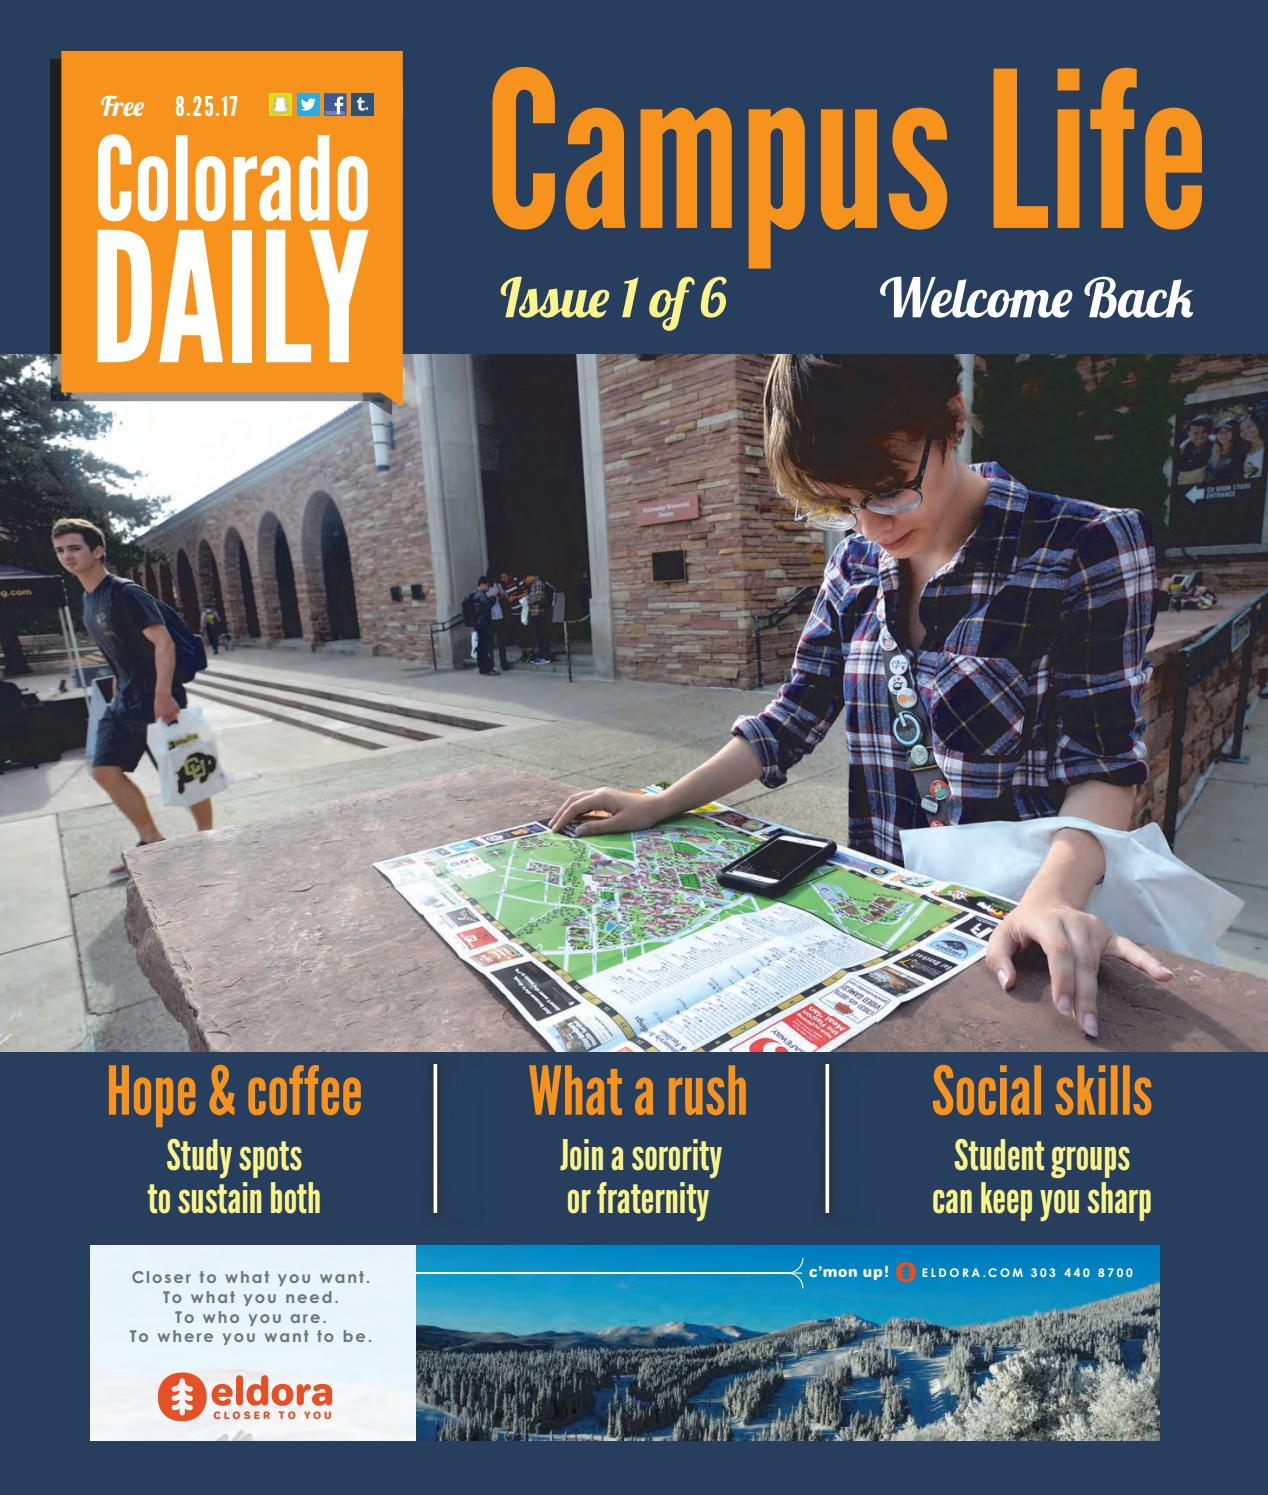 69d1b300ea Campus Life ~ Welcome Back 2017 Issue 1 by Prairie Mountain Media ...